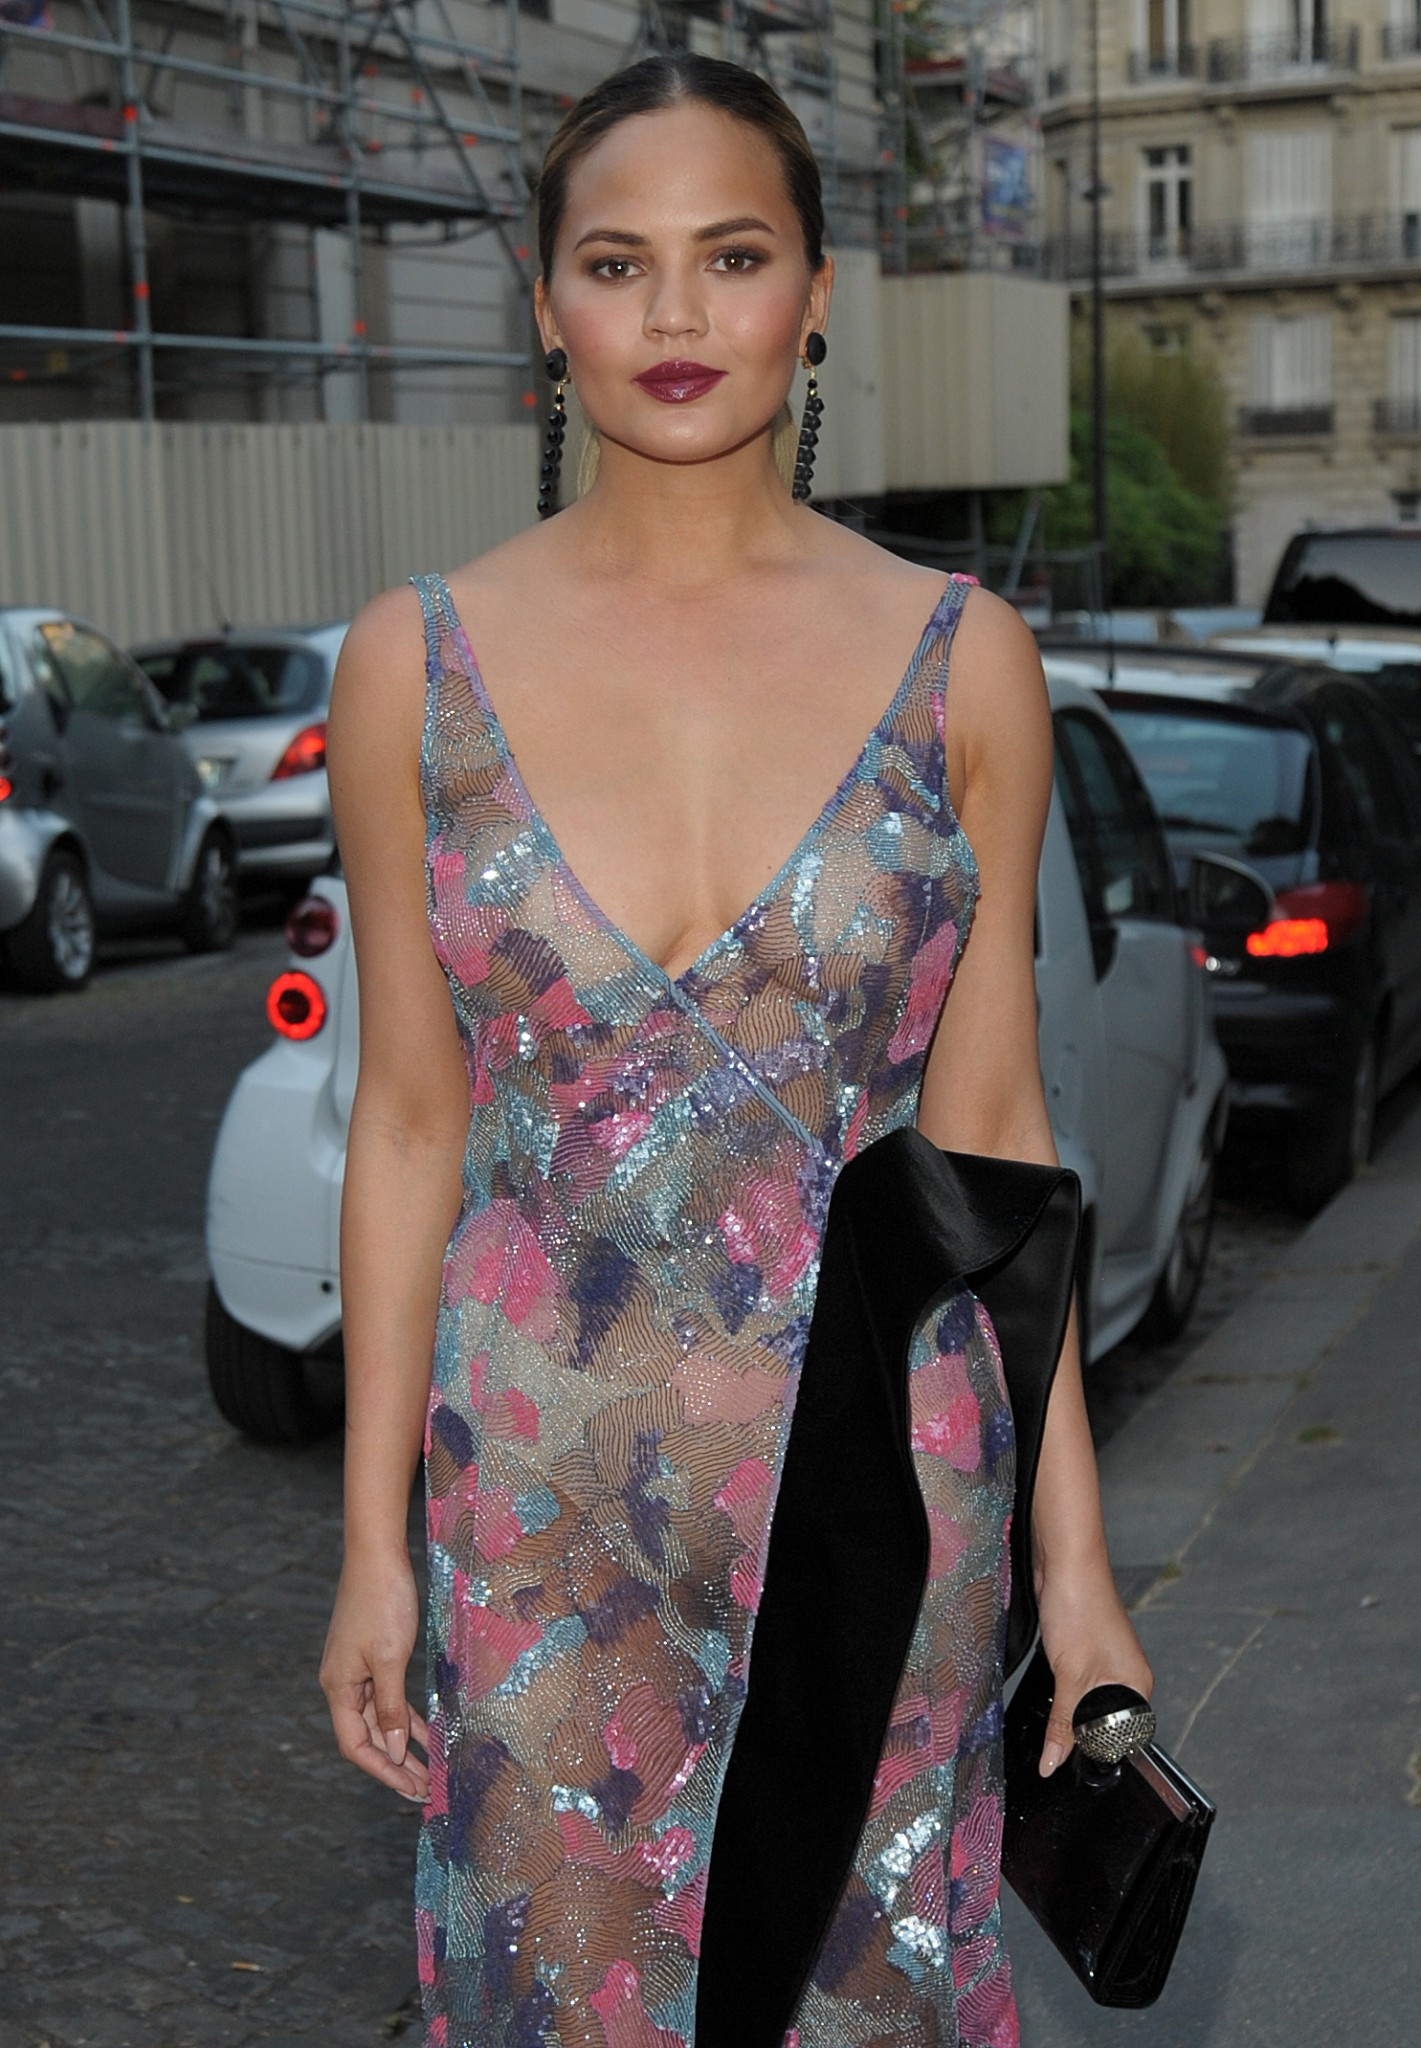 chrissy-teigen-see-through-to-nipples-voge-paris-7